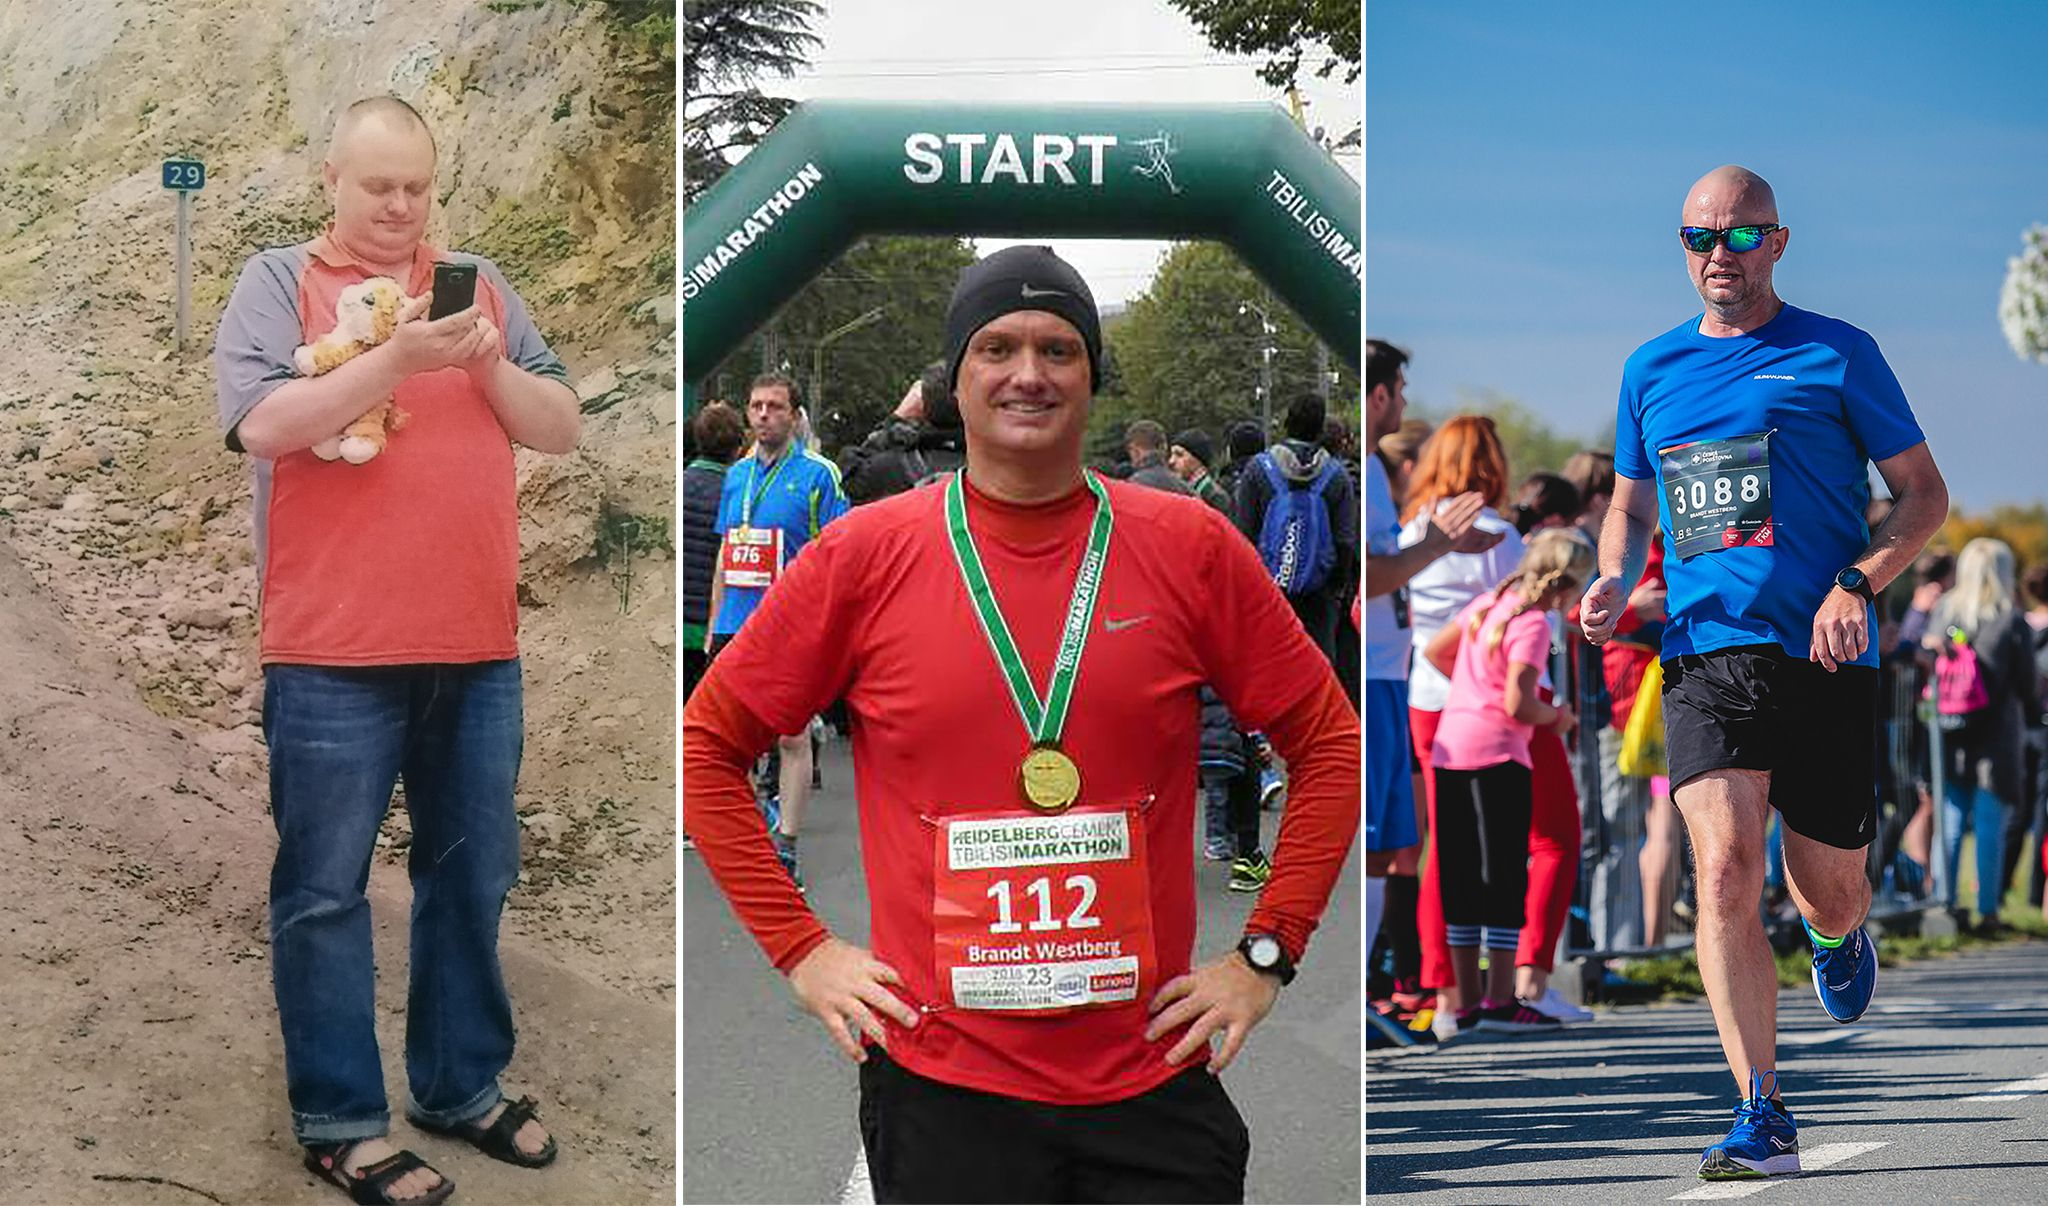 A Diabetes Diagnosis Sparked Him to Start Running—and Helped Him Drop 114 Pounds